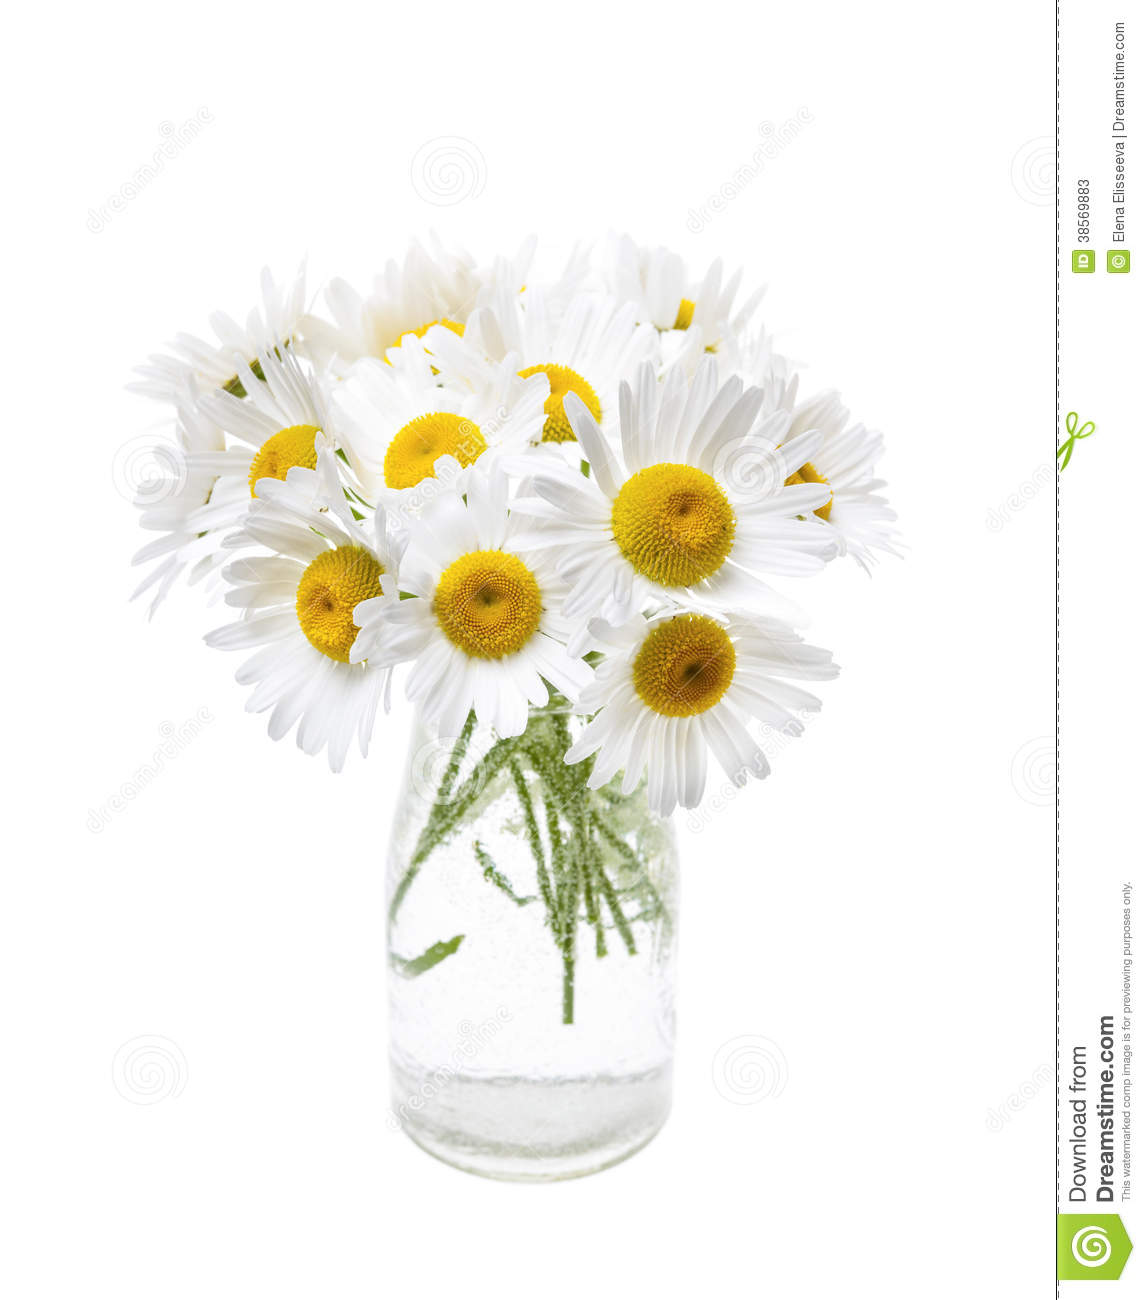 Bouquet of daisies stock image. Image of bouquet, glass.